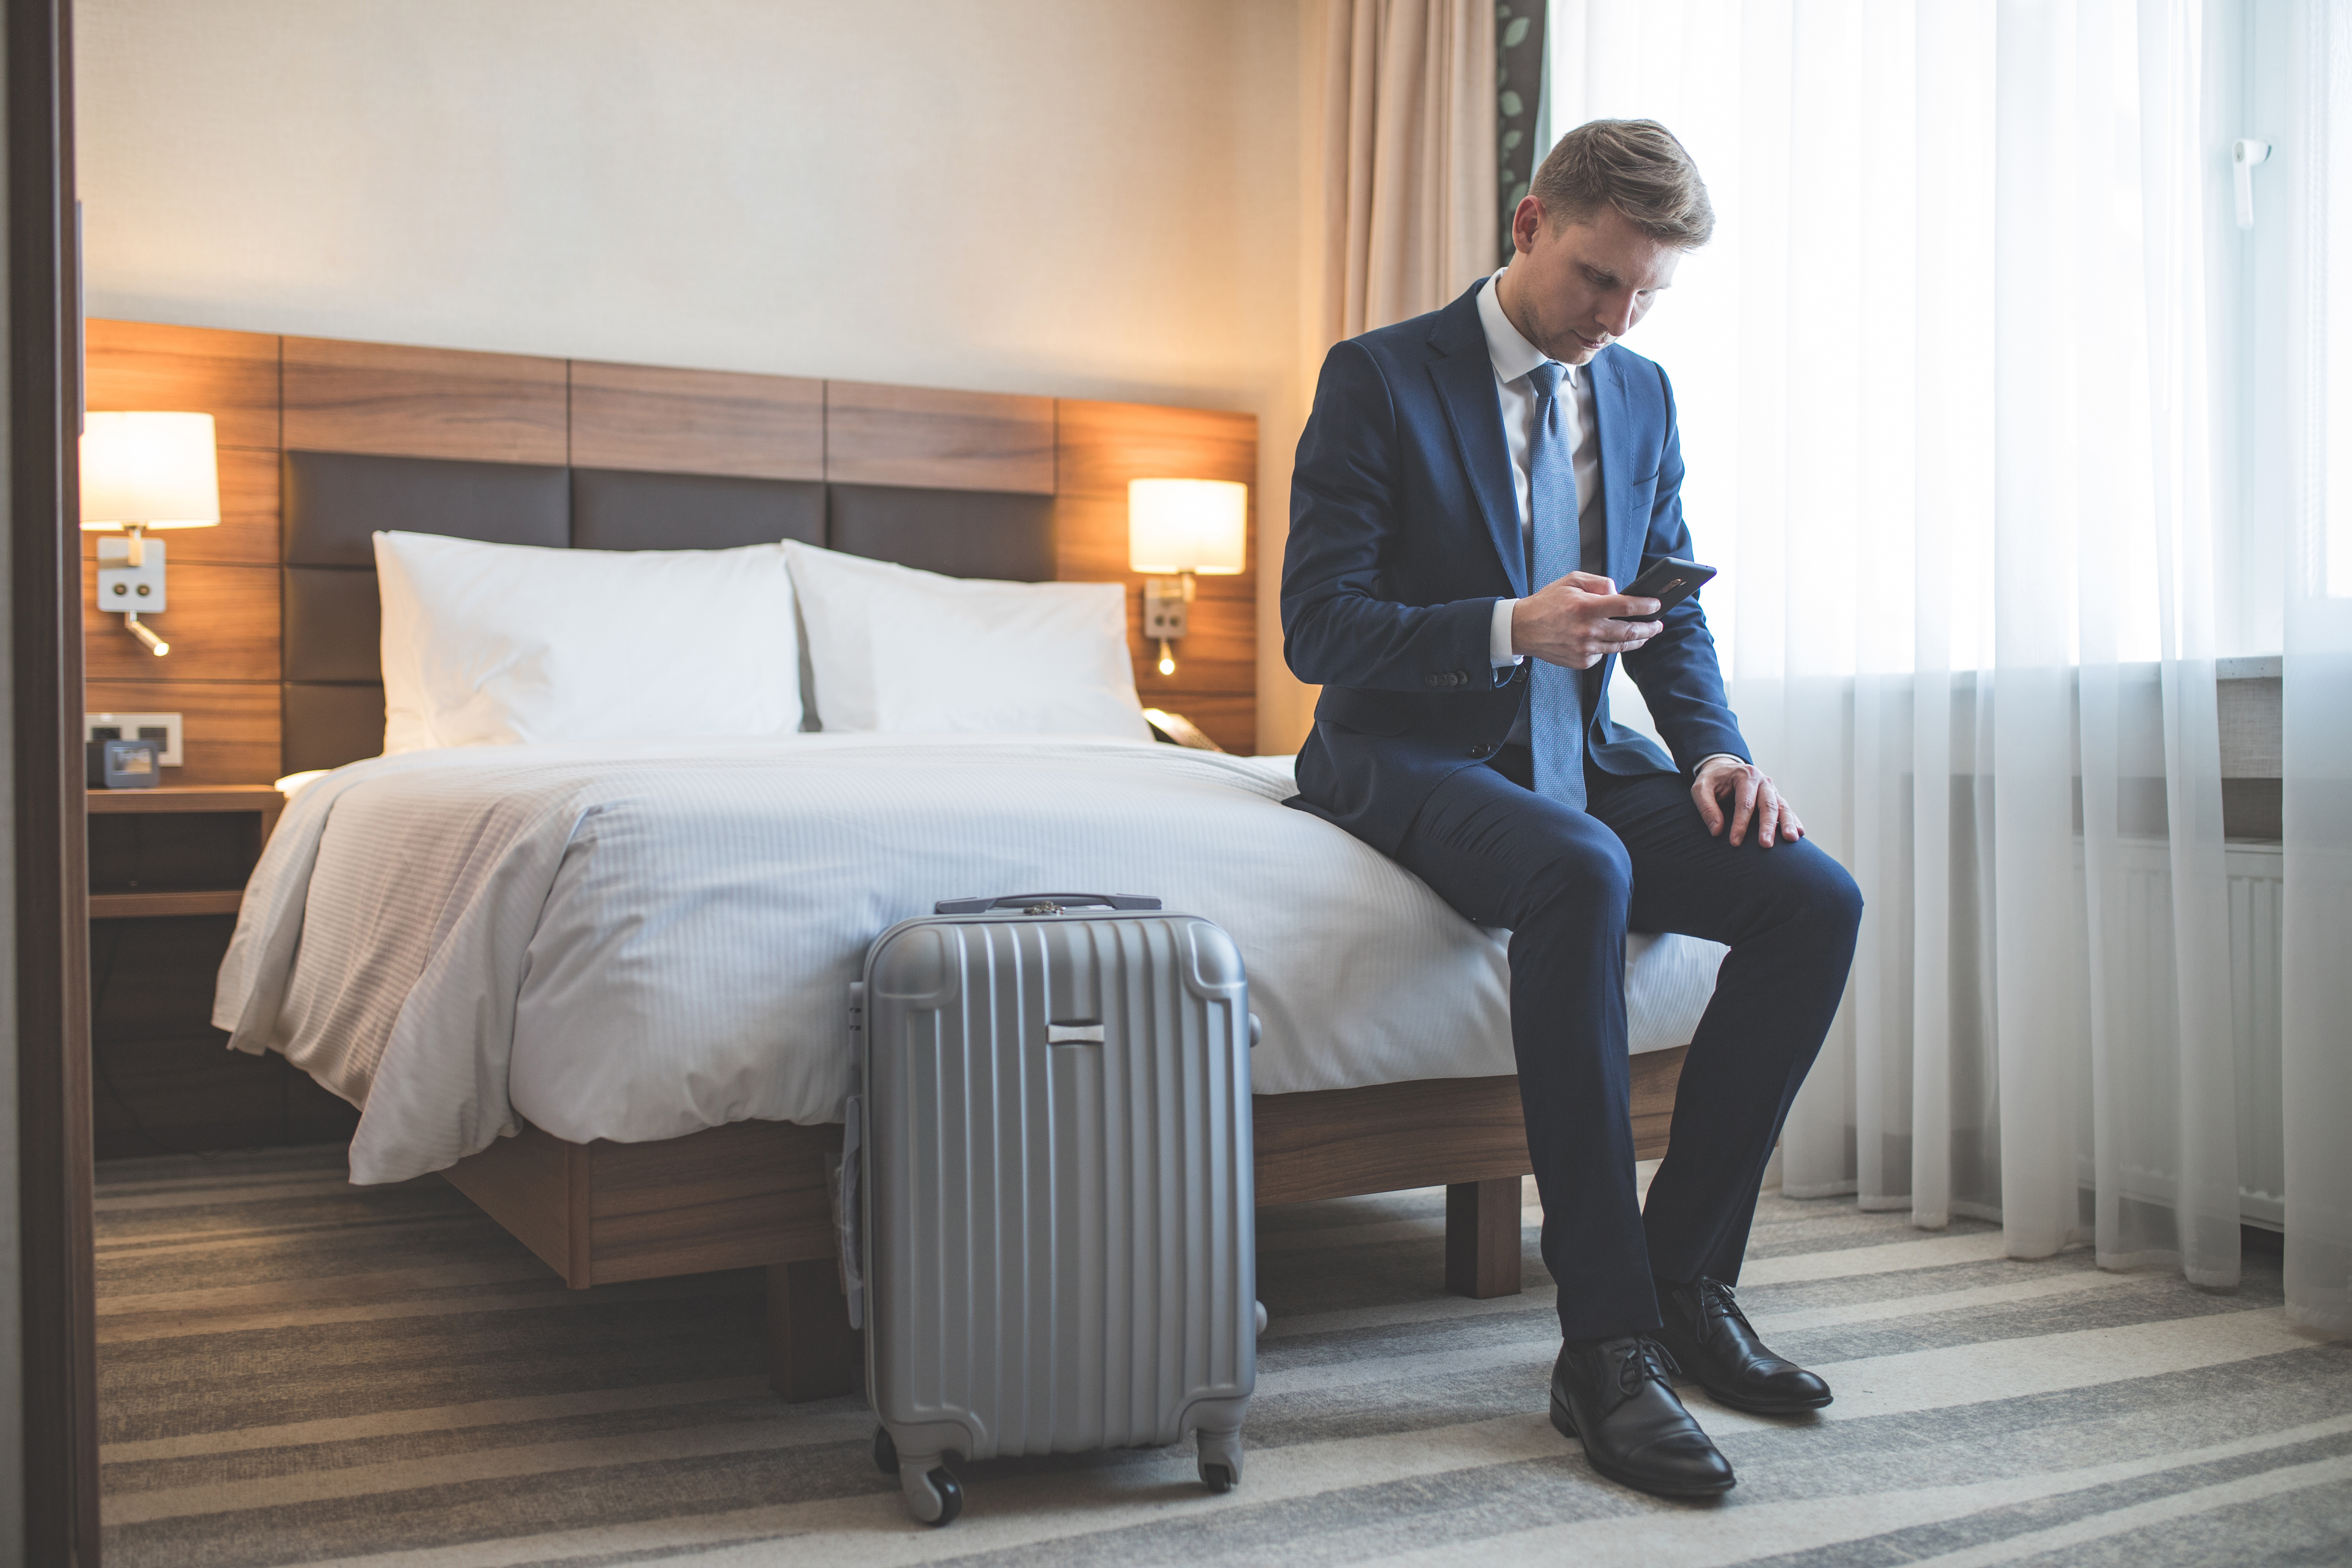 Campus Hotels / Conference Centers: Part 1 – Why, how, trends, and where we go from here